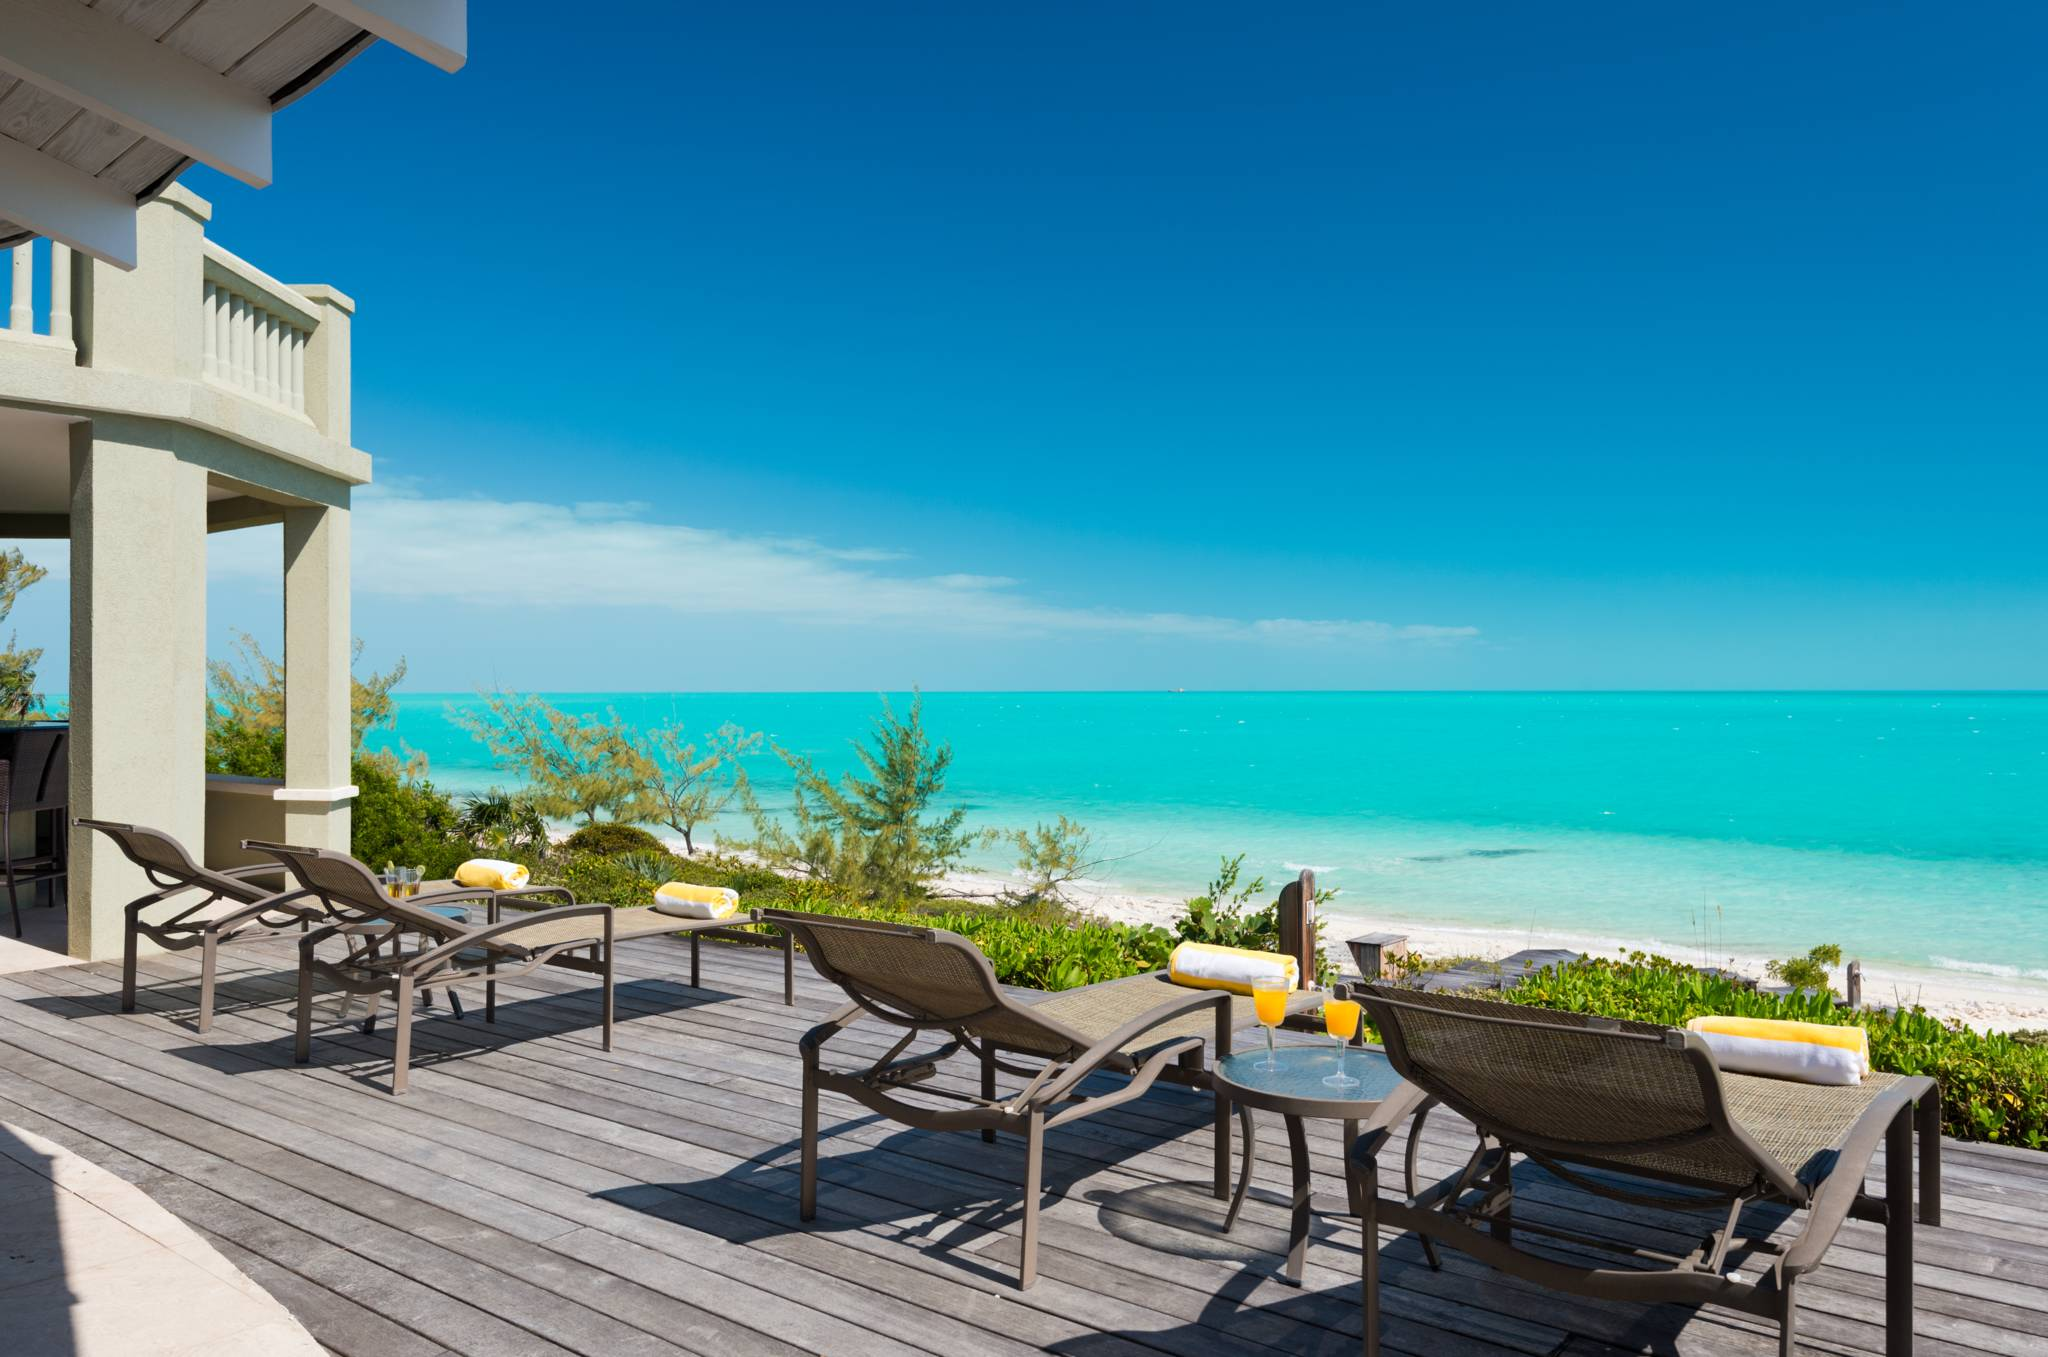 Calms seas and quiet beach define Casa Varnishkes luxury vacation villa